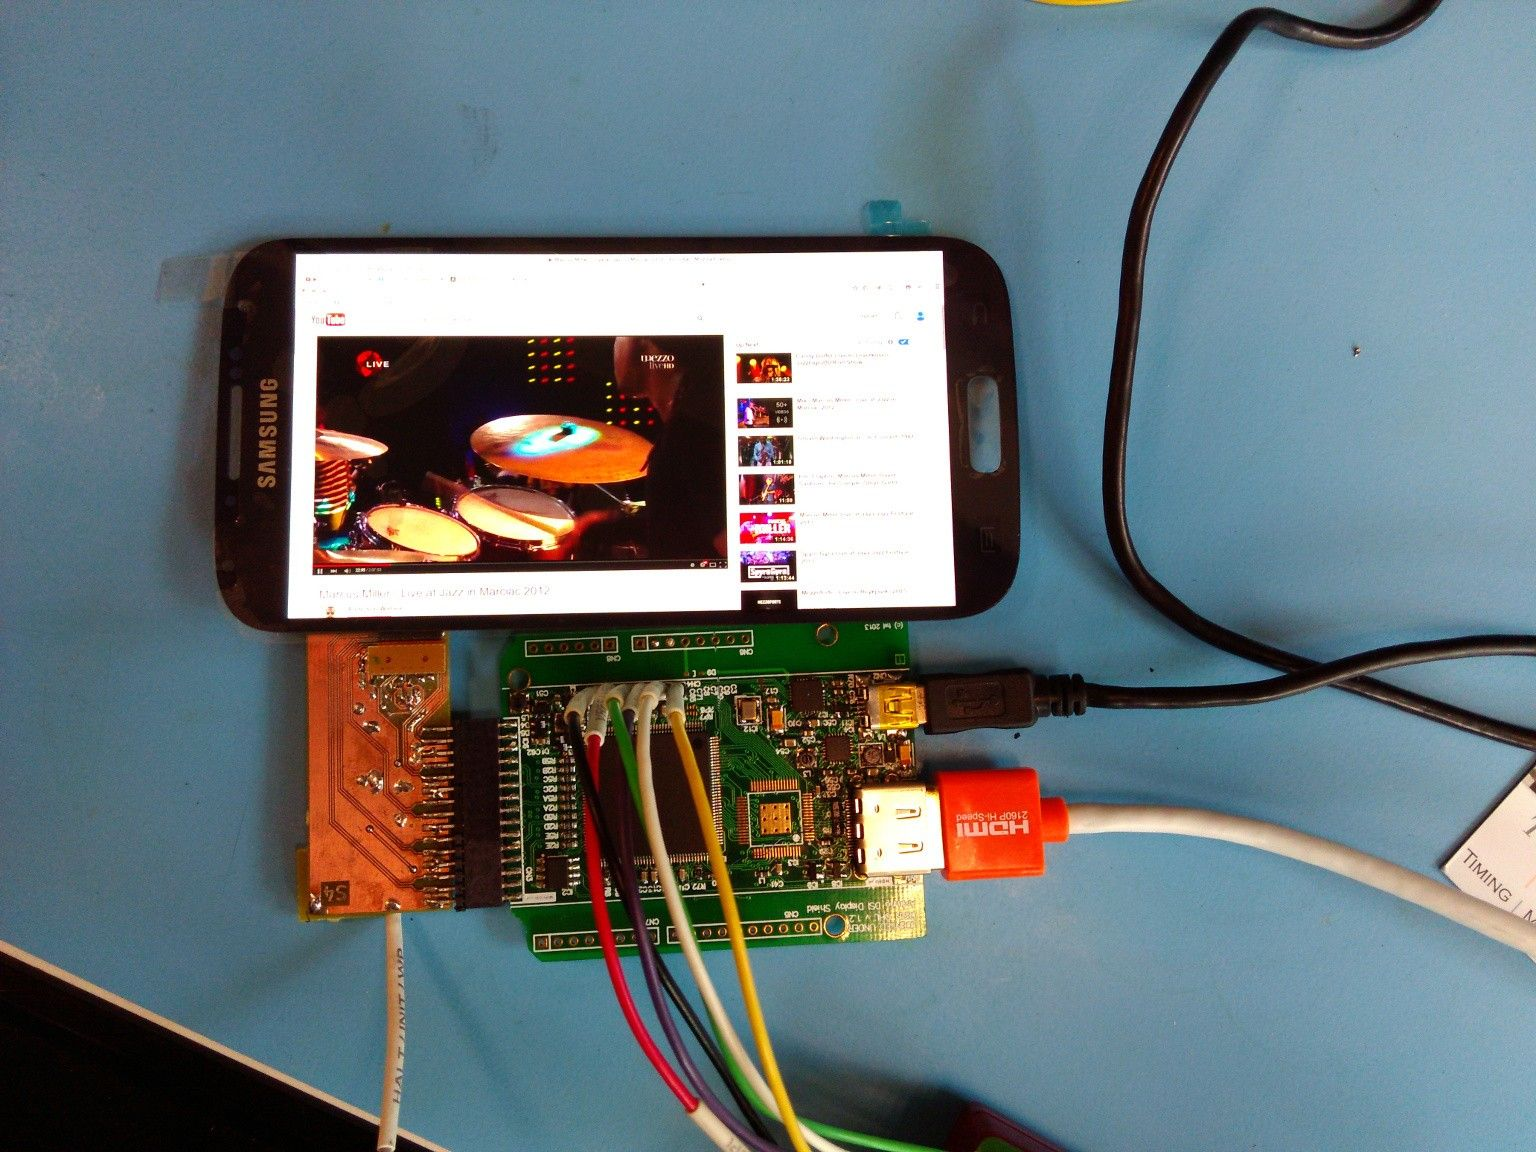 A Simple Controller For Mipi Dsi Displays Based On A Xilinx Spartan 6 Fpga Mipi Dsi Is A High Speed Packet Based Interface For De Dsi Smartphone Repair Hdmi